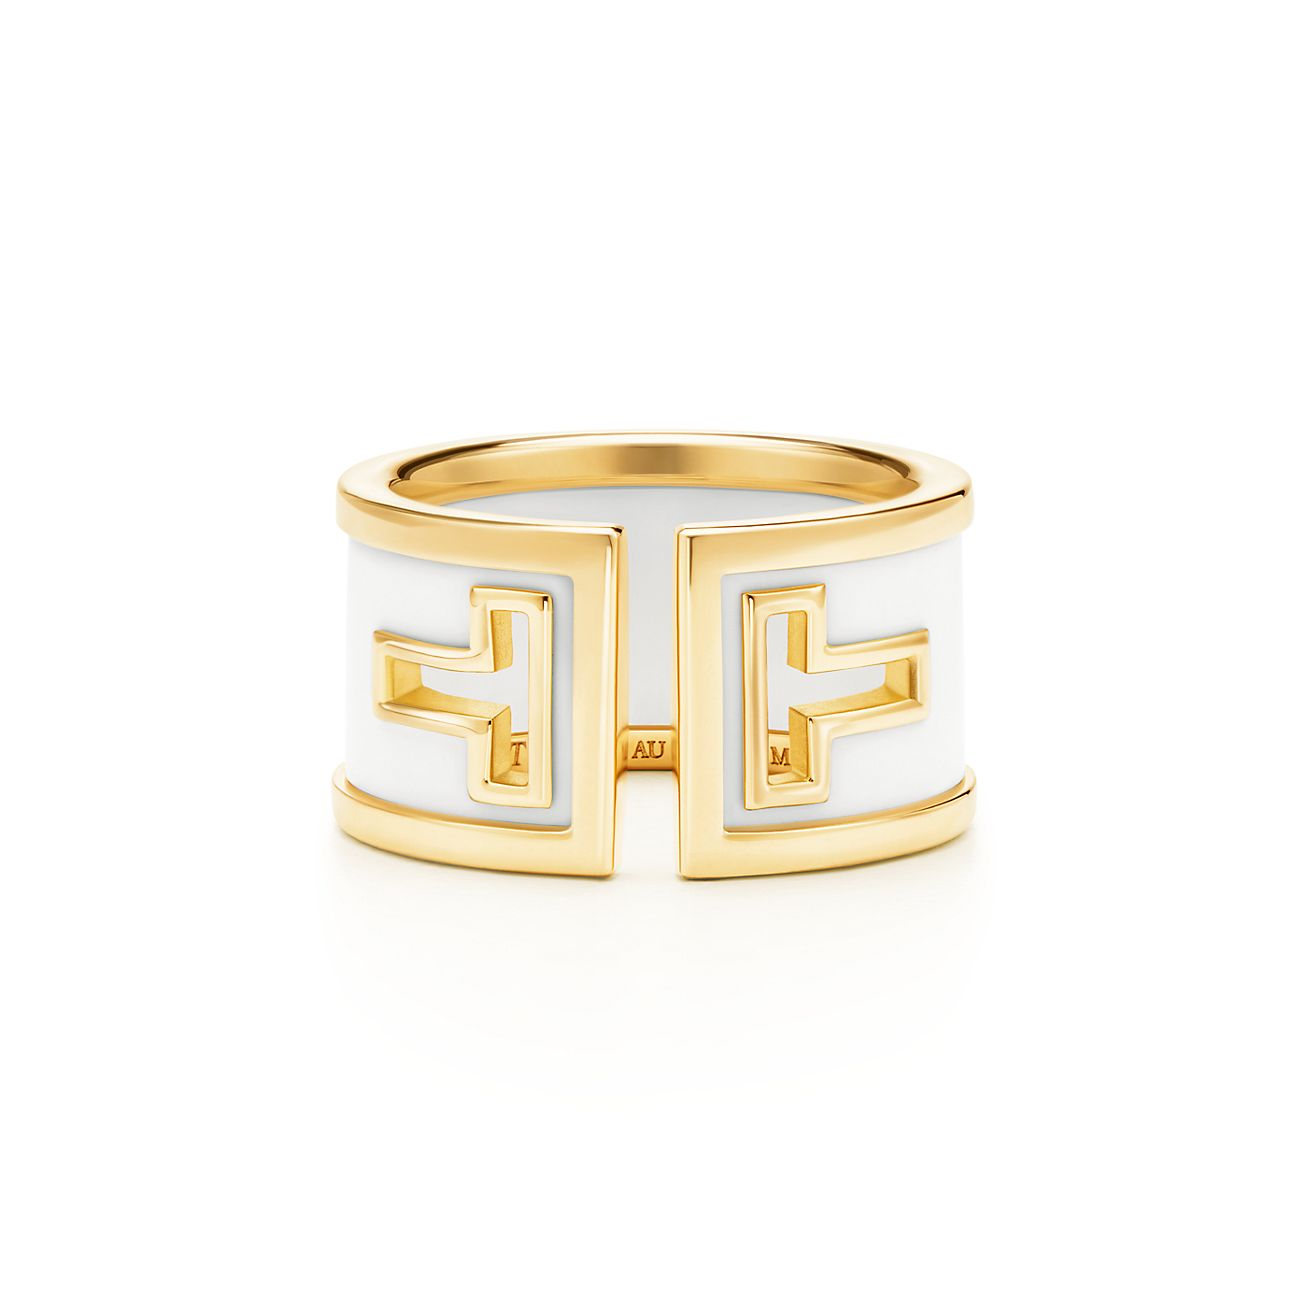 Tiffany T:Cutout Ring